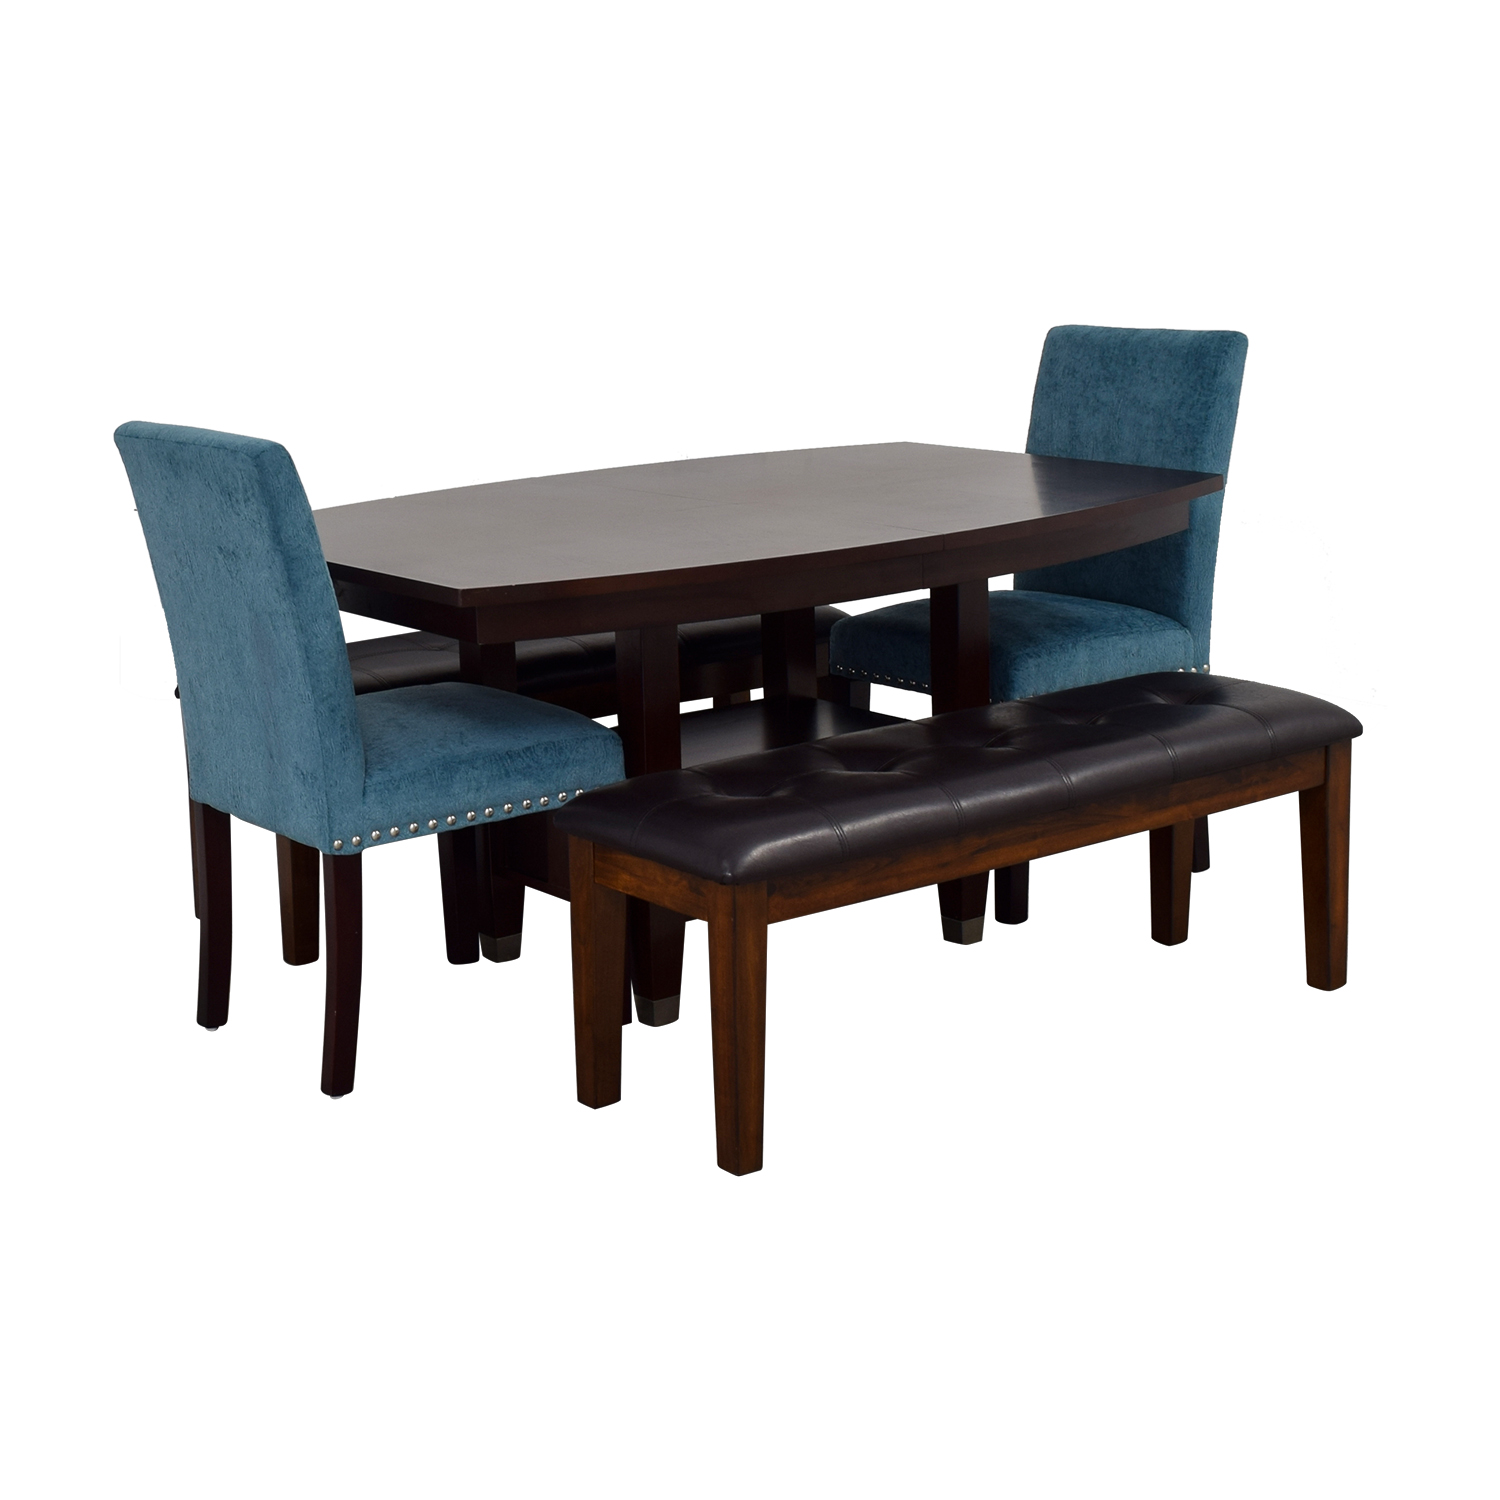 Excellent 78 Off Raymour Flanigan Raymour Flanigan Dining Set With Benches And Chairs Tables Theyellowbook Wood Chair Design Ideas Theyellowbookinfo